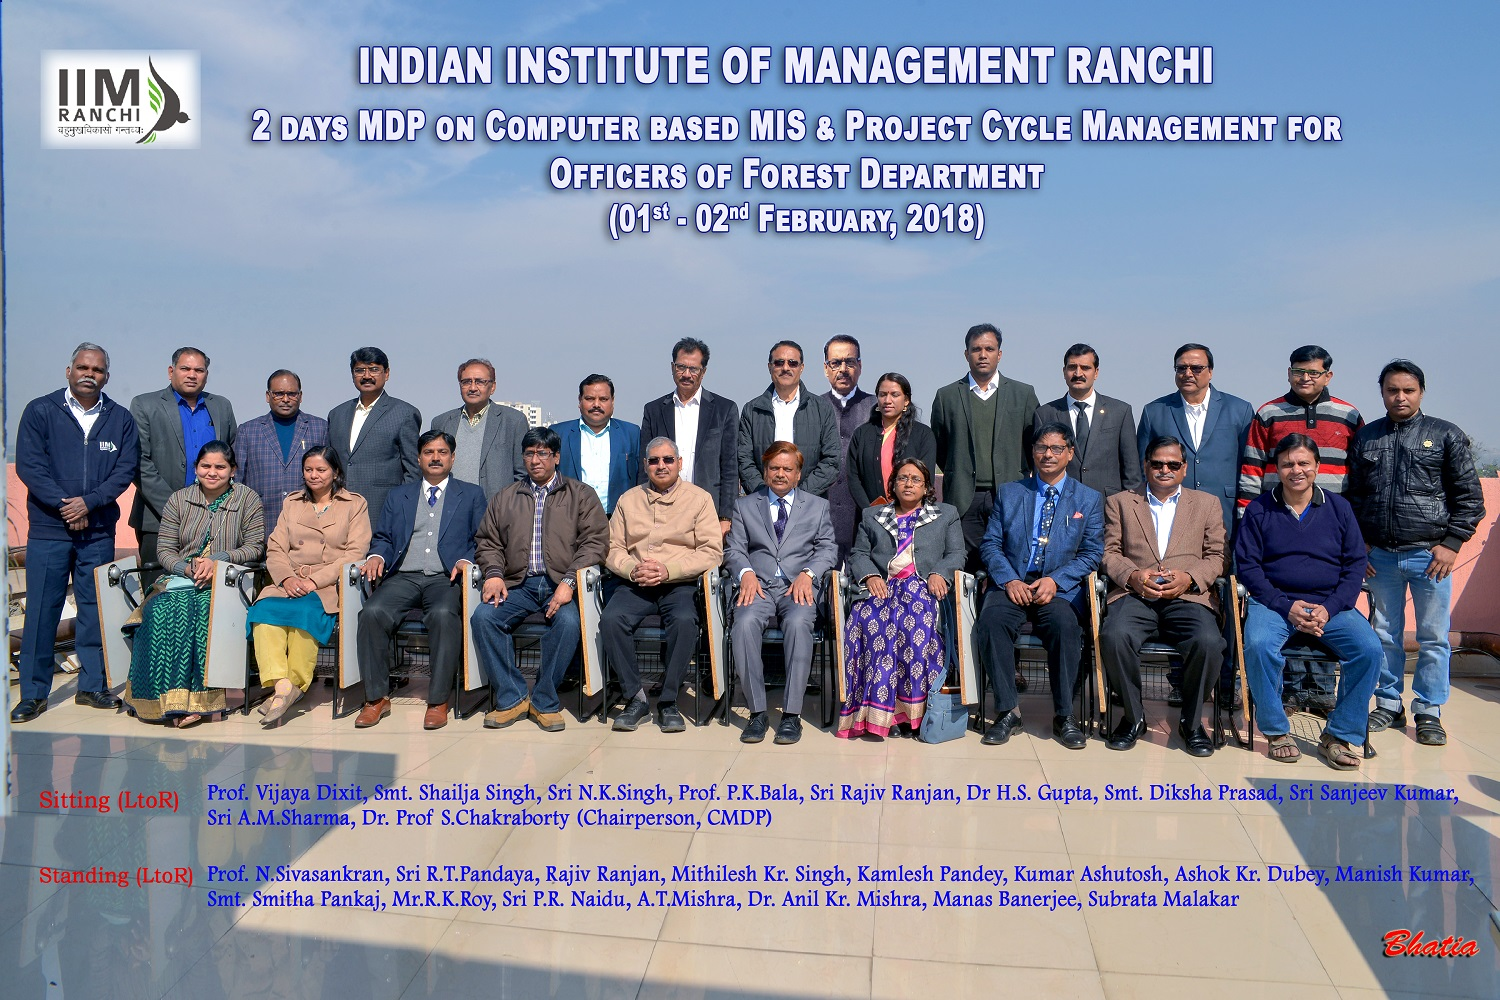 FOREST OFFICERS TRAINING AT IIM, RANCHI